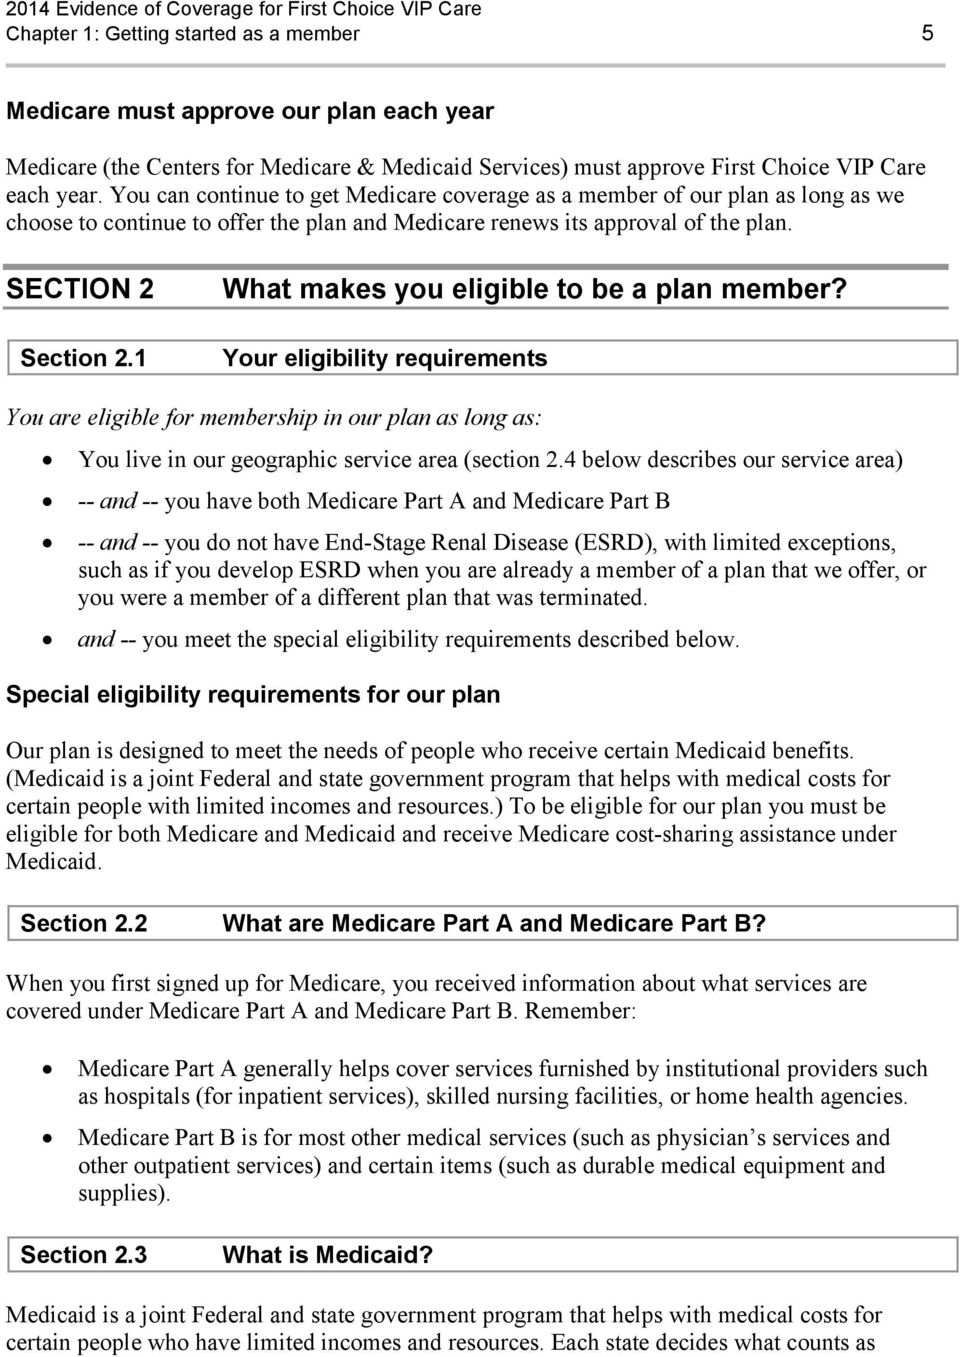 1 What makes you eligible to be a plan member? Your eligibility requirements You are eligible for membership in our plan as long as: You live in our geographic service area (section 2.